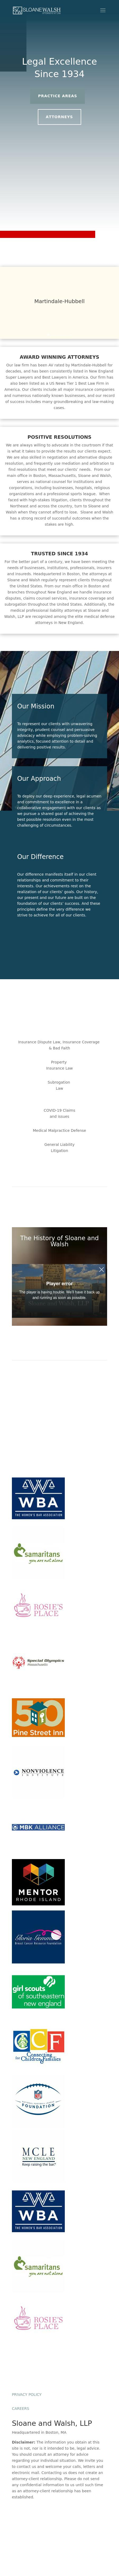 Sloane and Walsh, LLP - Boston MA Lawyers